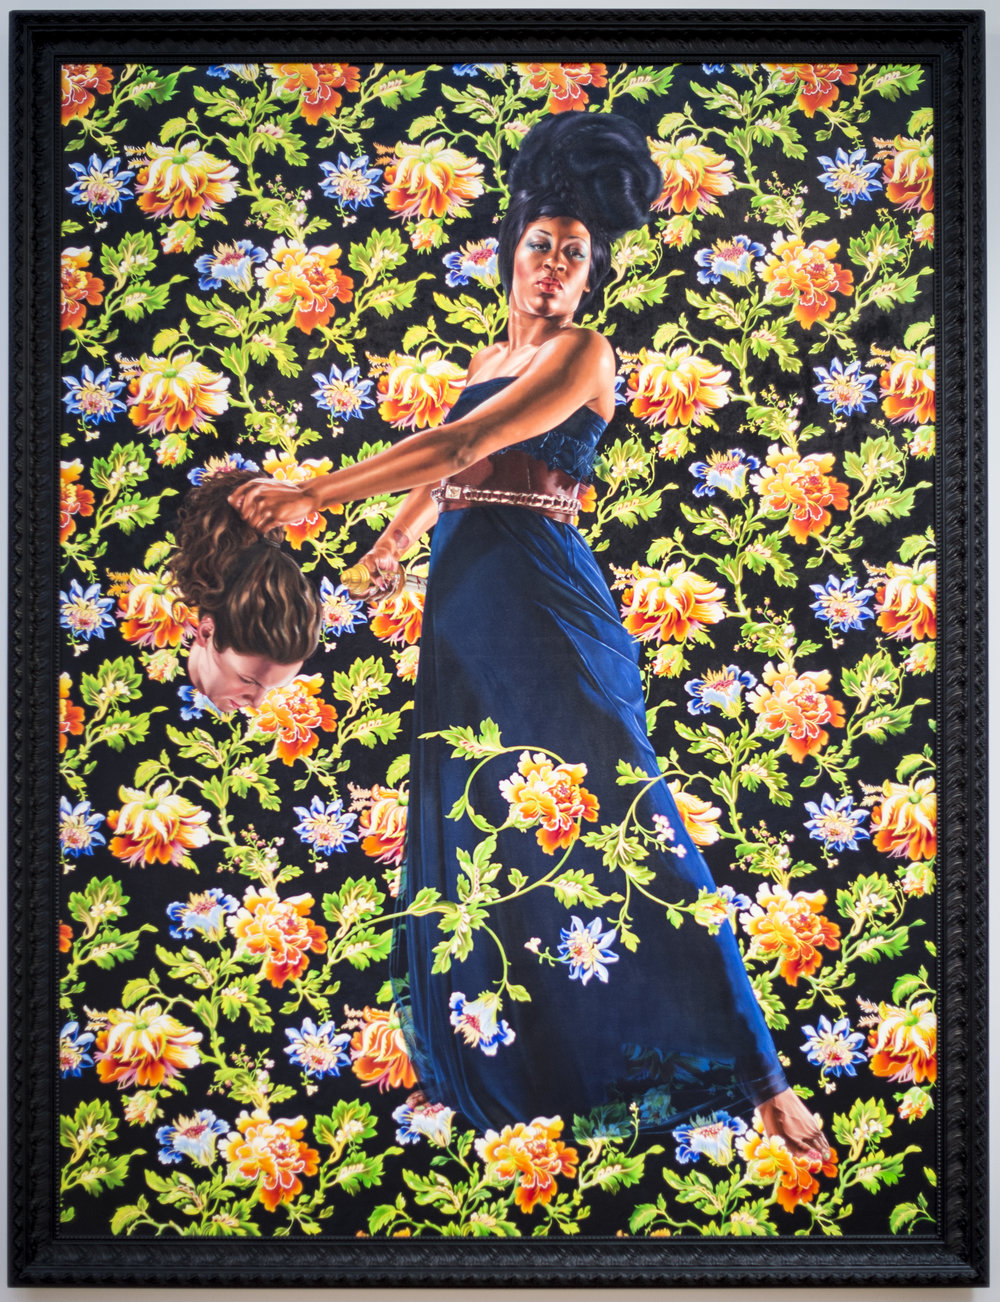 Raleigh_NCMA_Art_KehindeWiley_332018.jpg